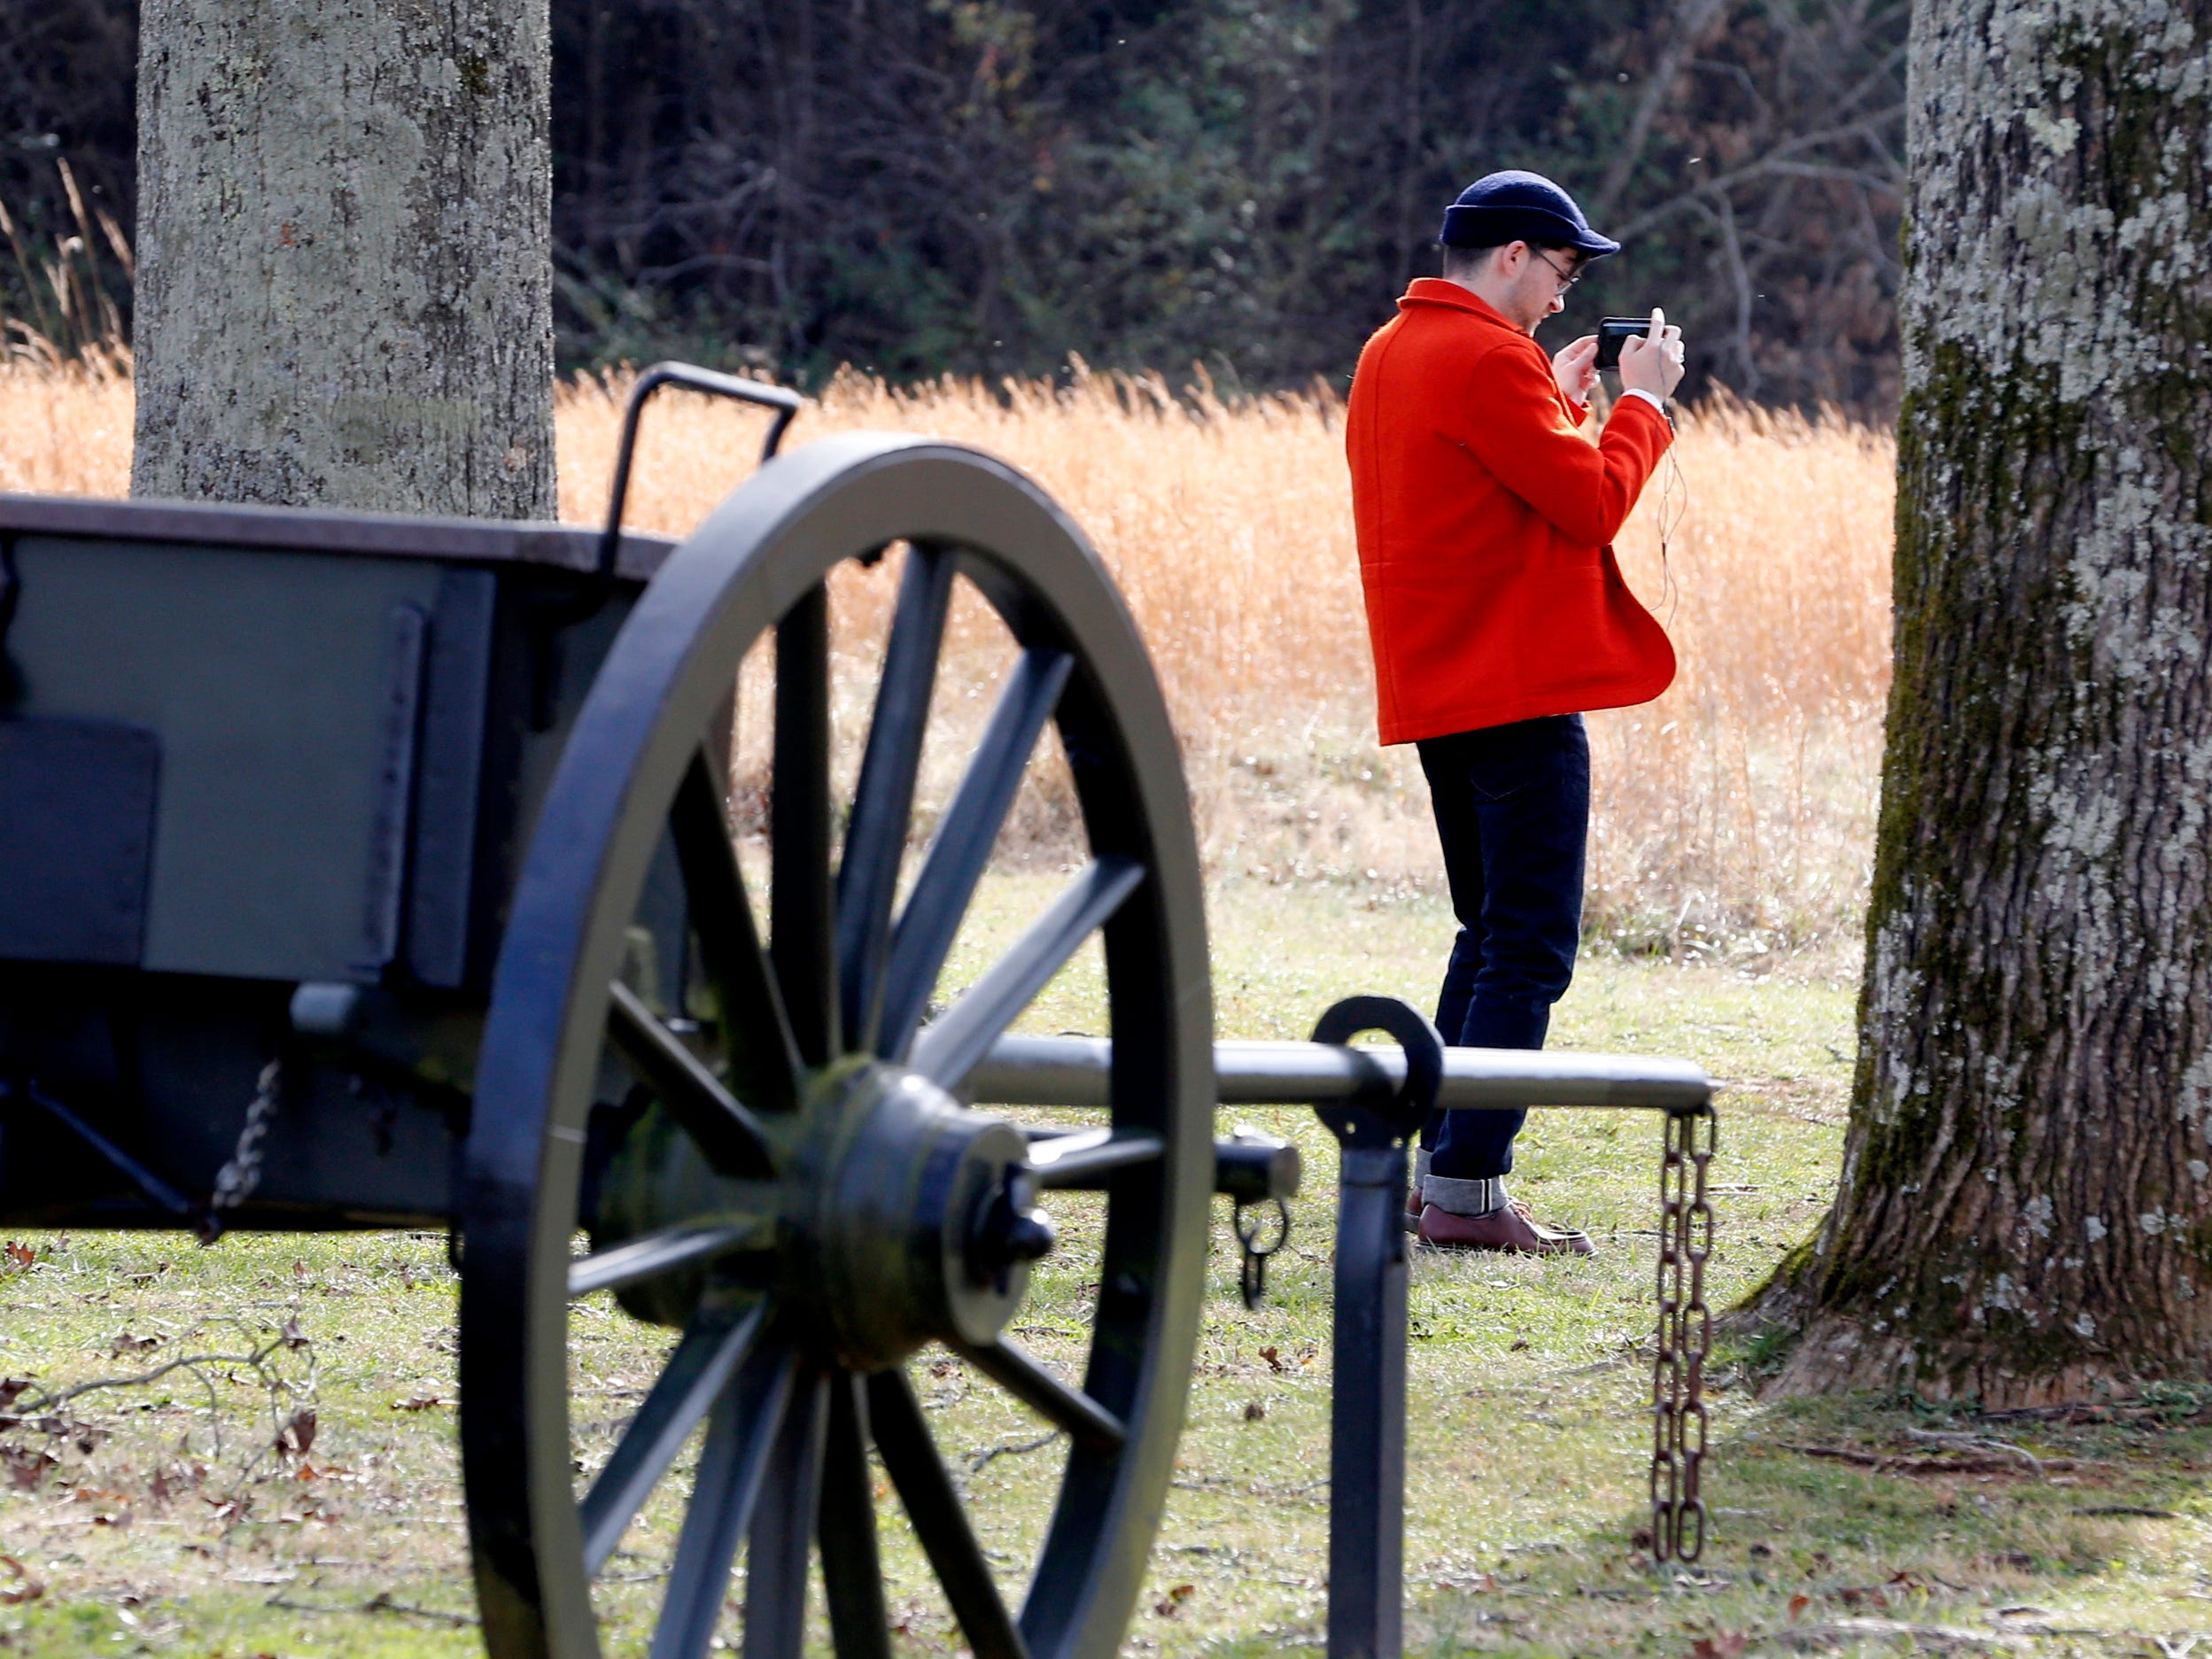 William Schlaack takes a picture of a civil war cannon at the Stones River National Battlefield, which is still closed on Thursday Jan. 7, 2019, after the government shutdown on Dec. 22, 2018.